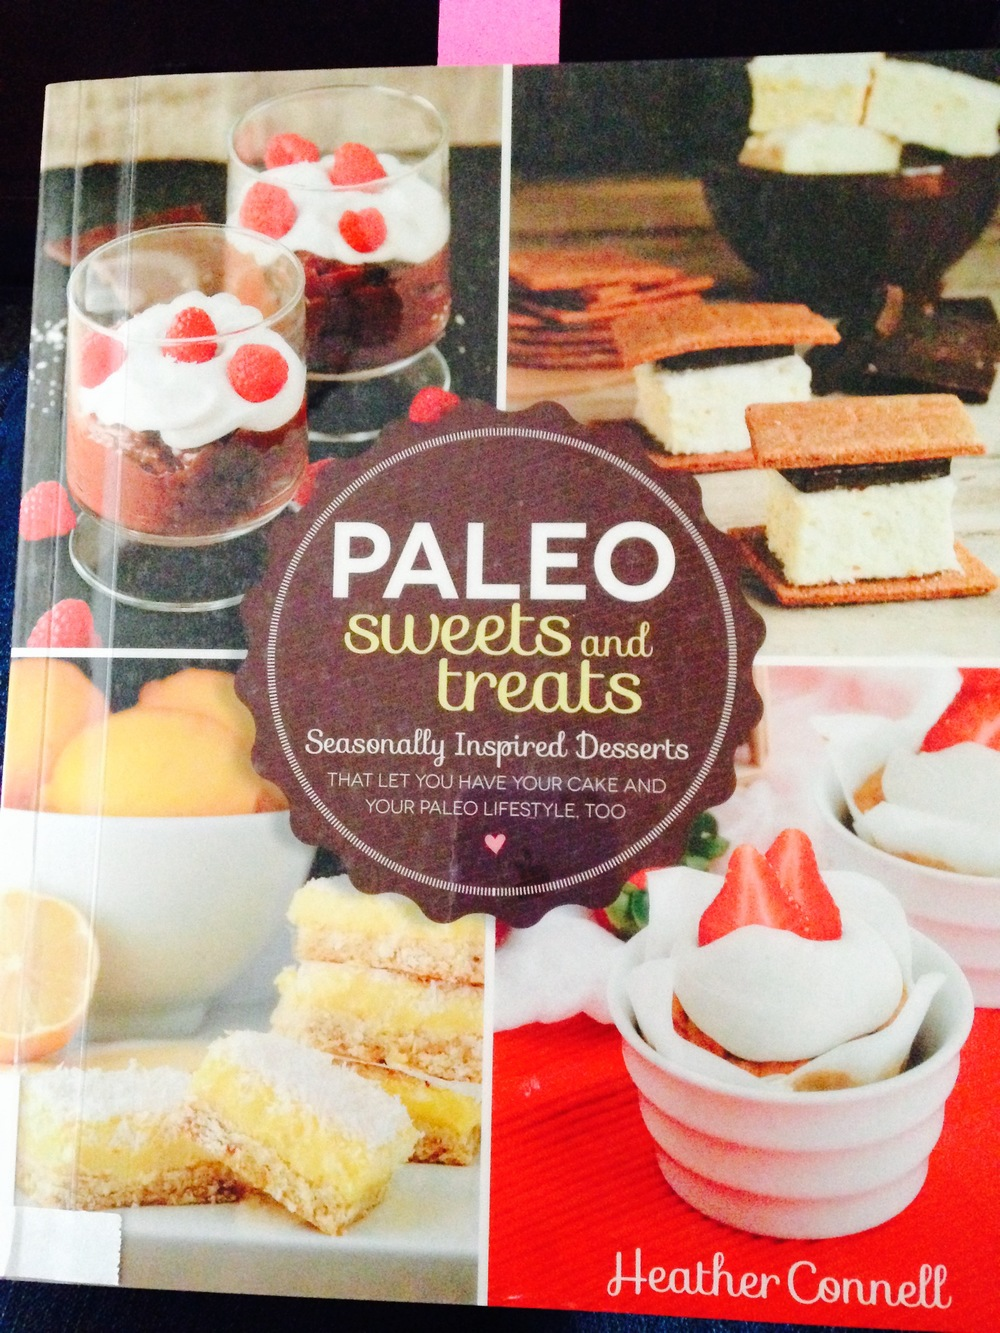 paleo sweets and treats.jpg